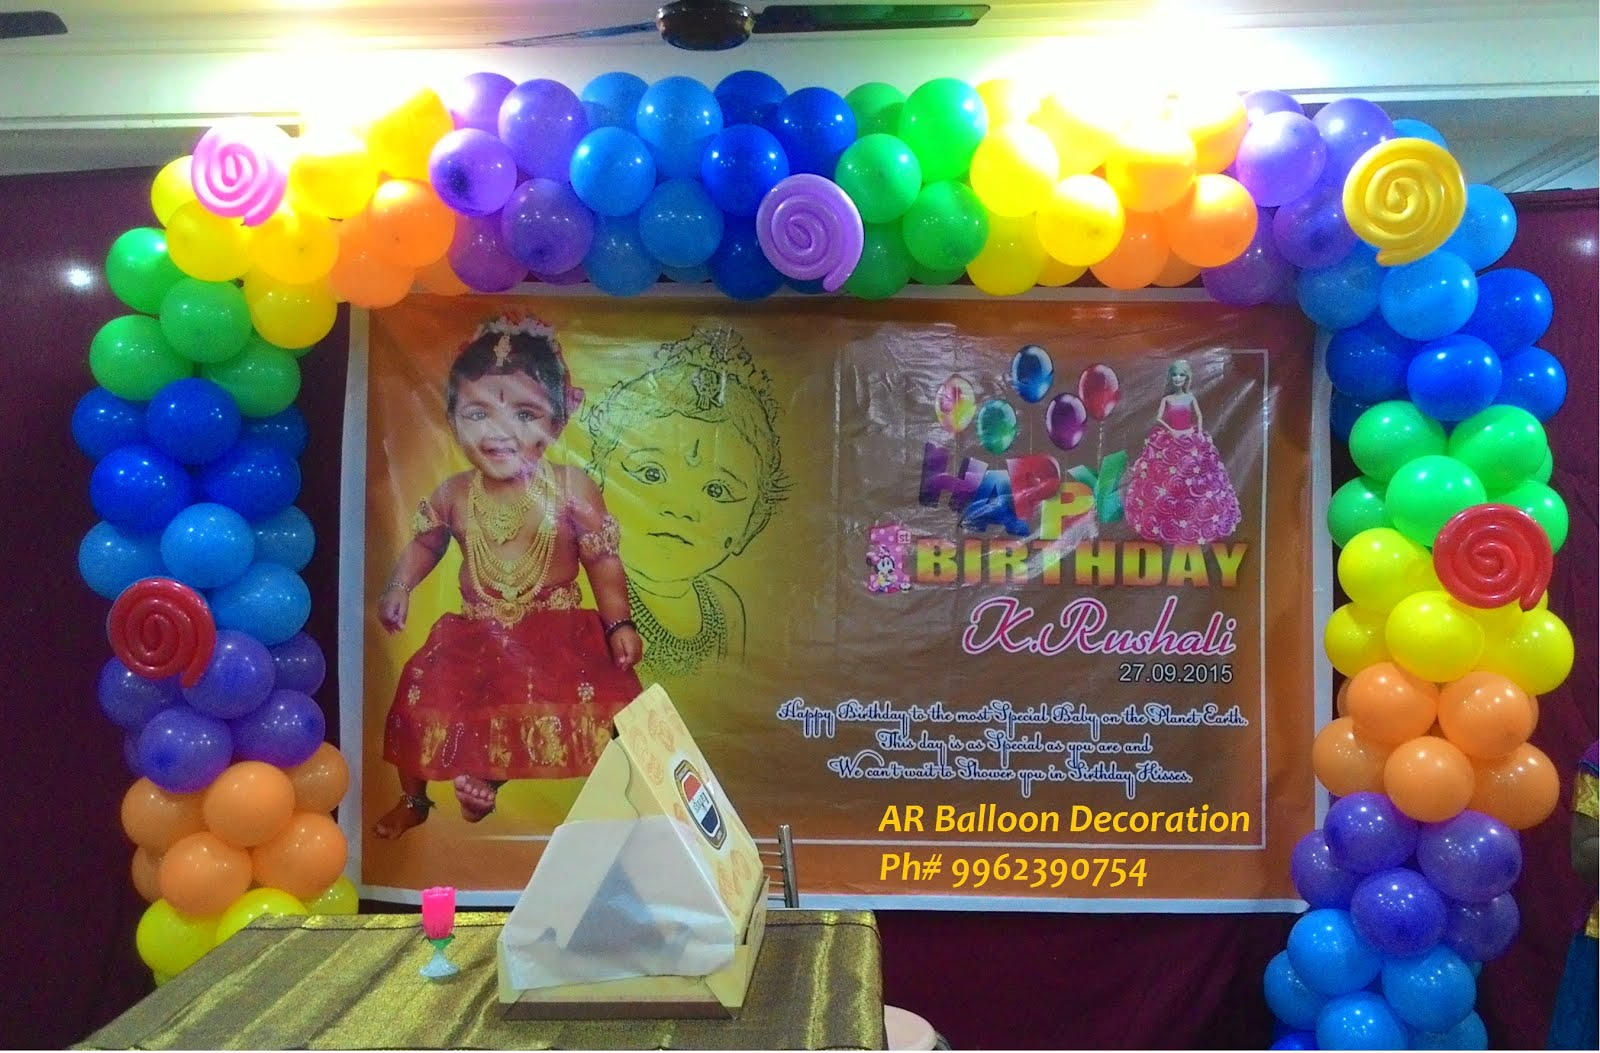 Balloon decorations name ceremony balloon decoration for Home decorations with balloons